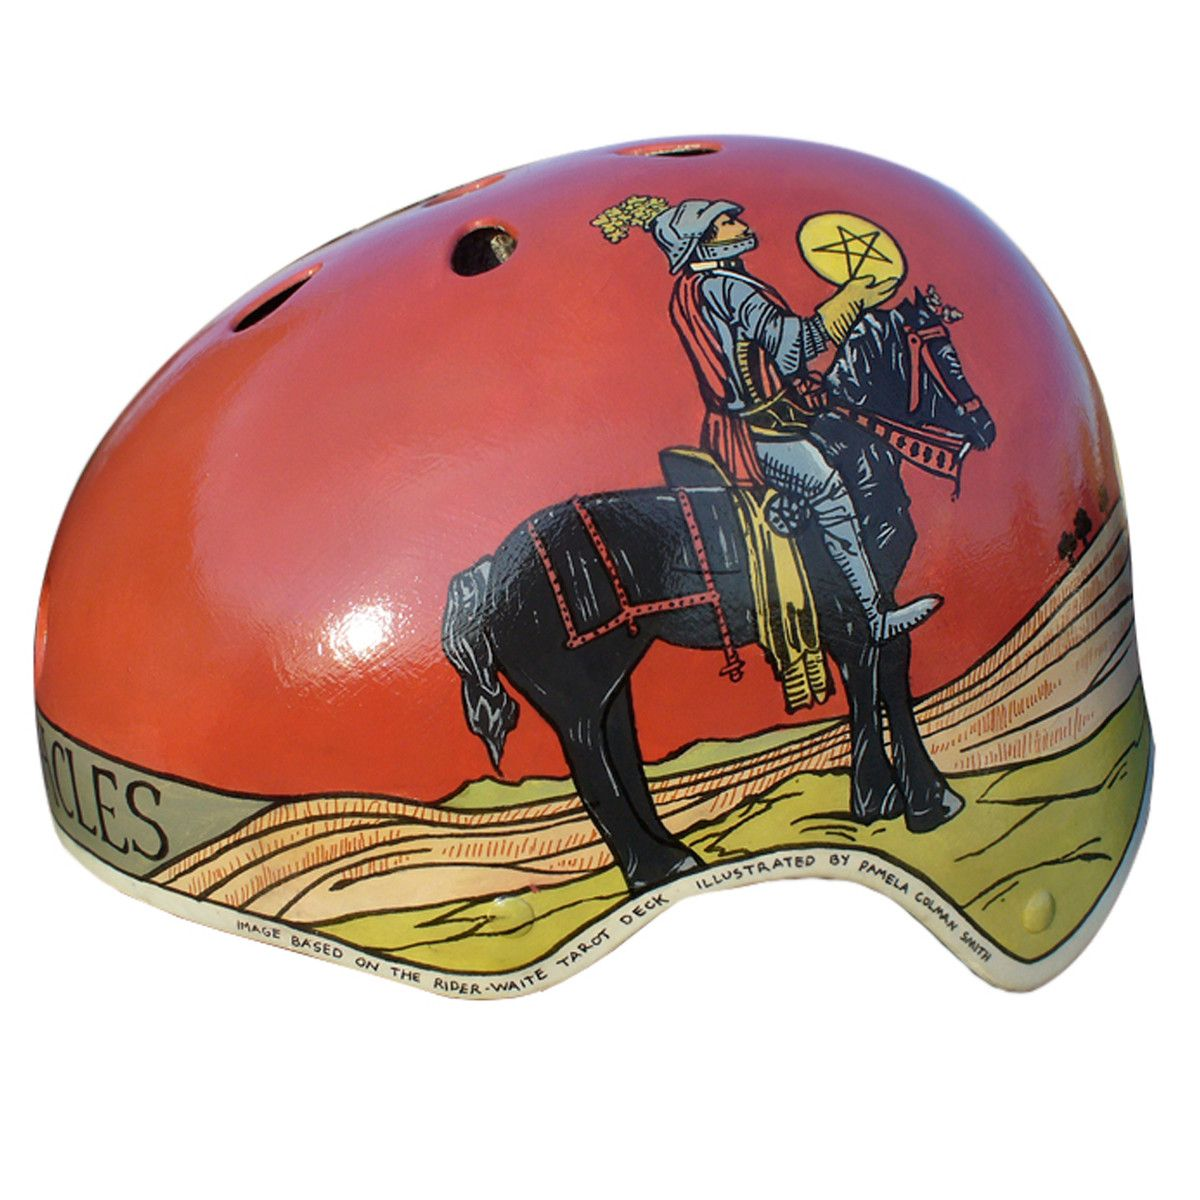 Knight of Pentacles bicycle helmet, by Danielle Baskin. awesome.